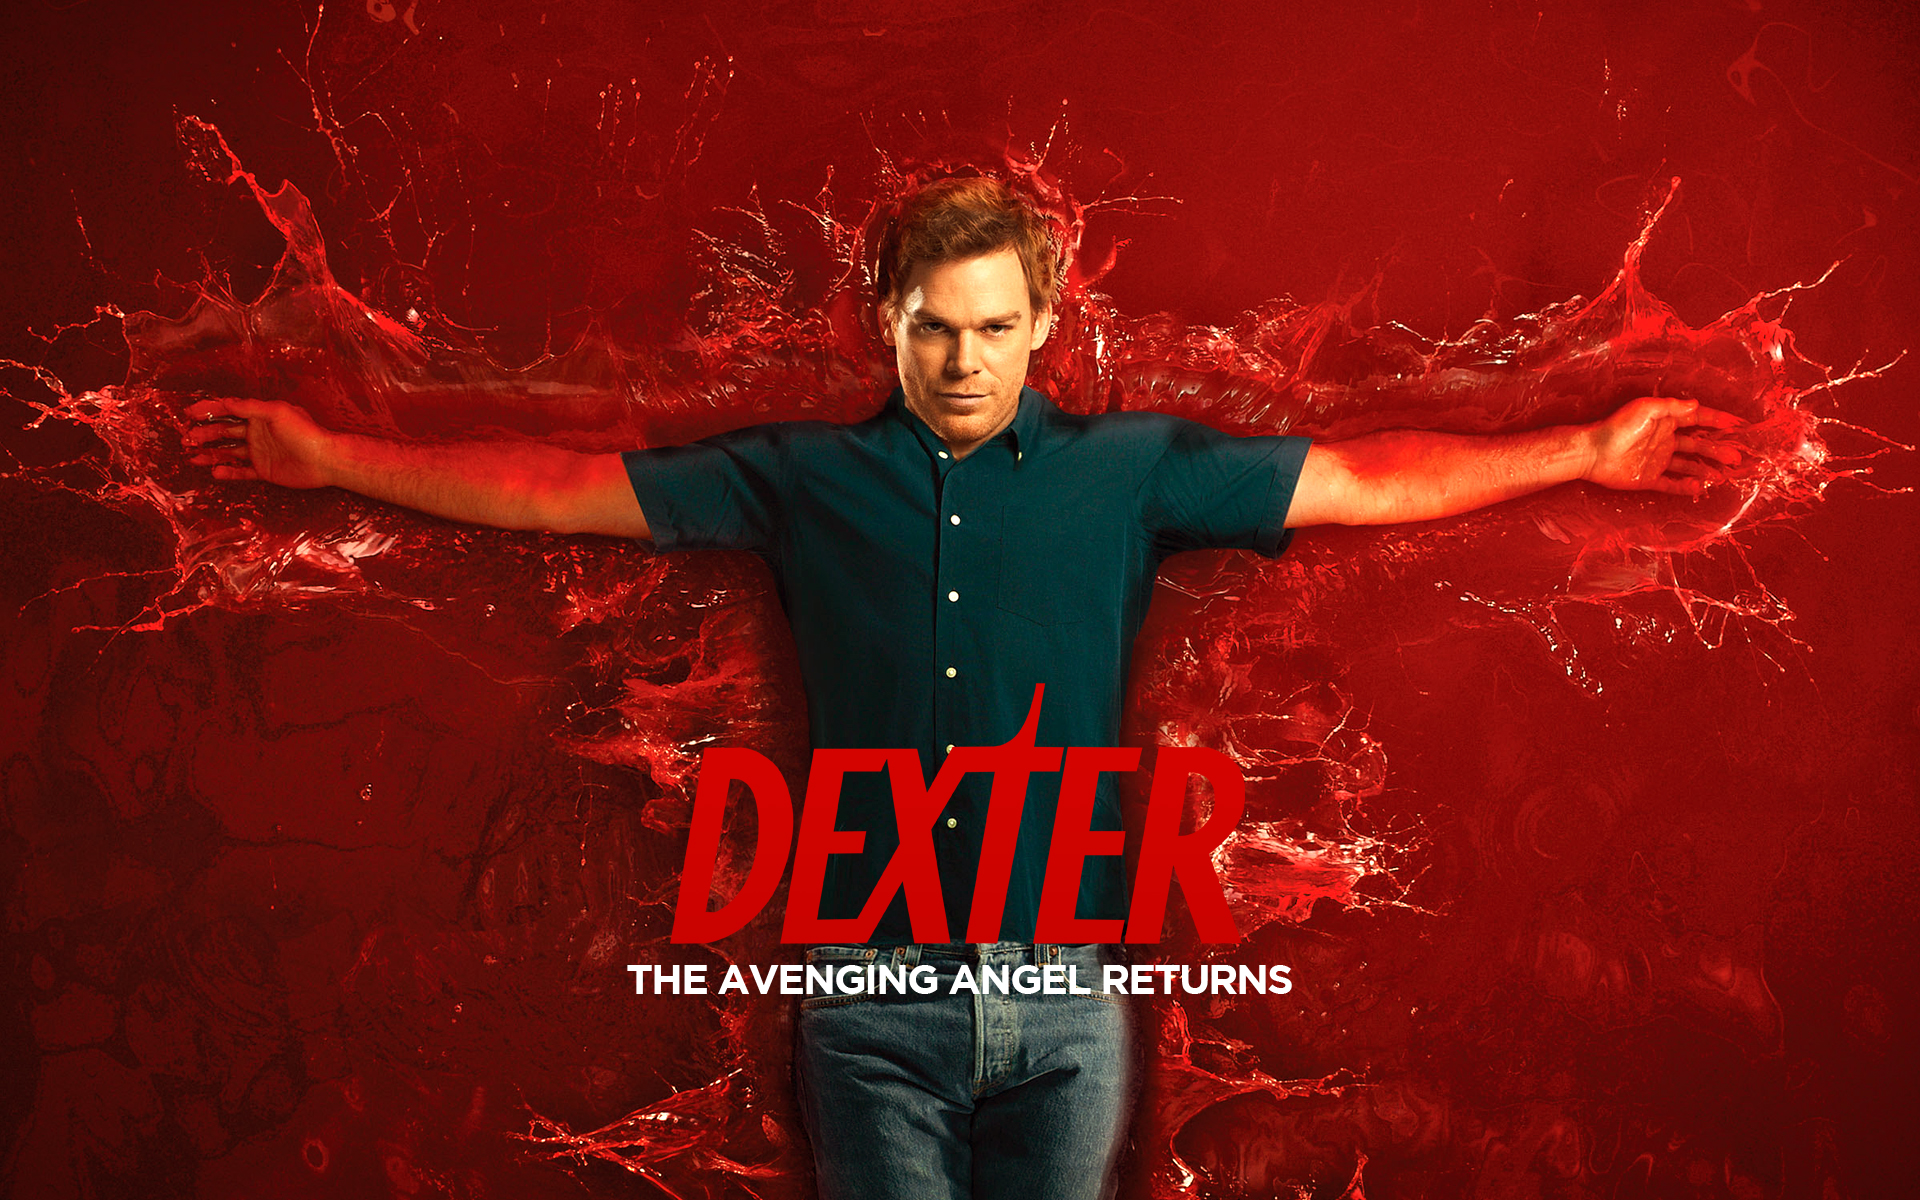 Dexter, Season 6, The Avenging Angel Returns